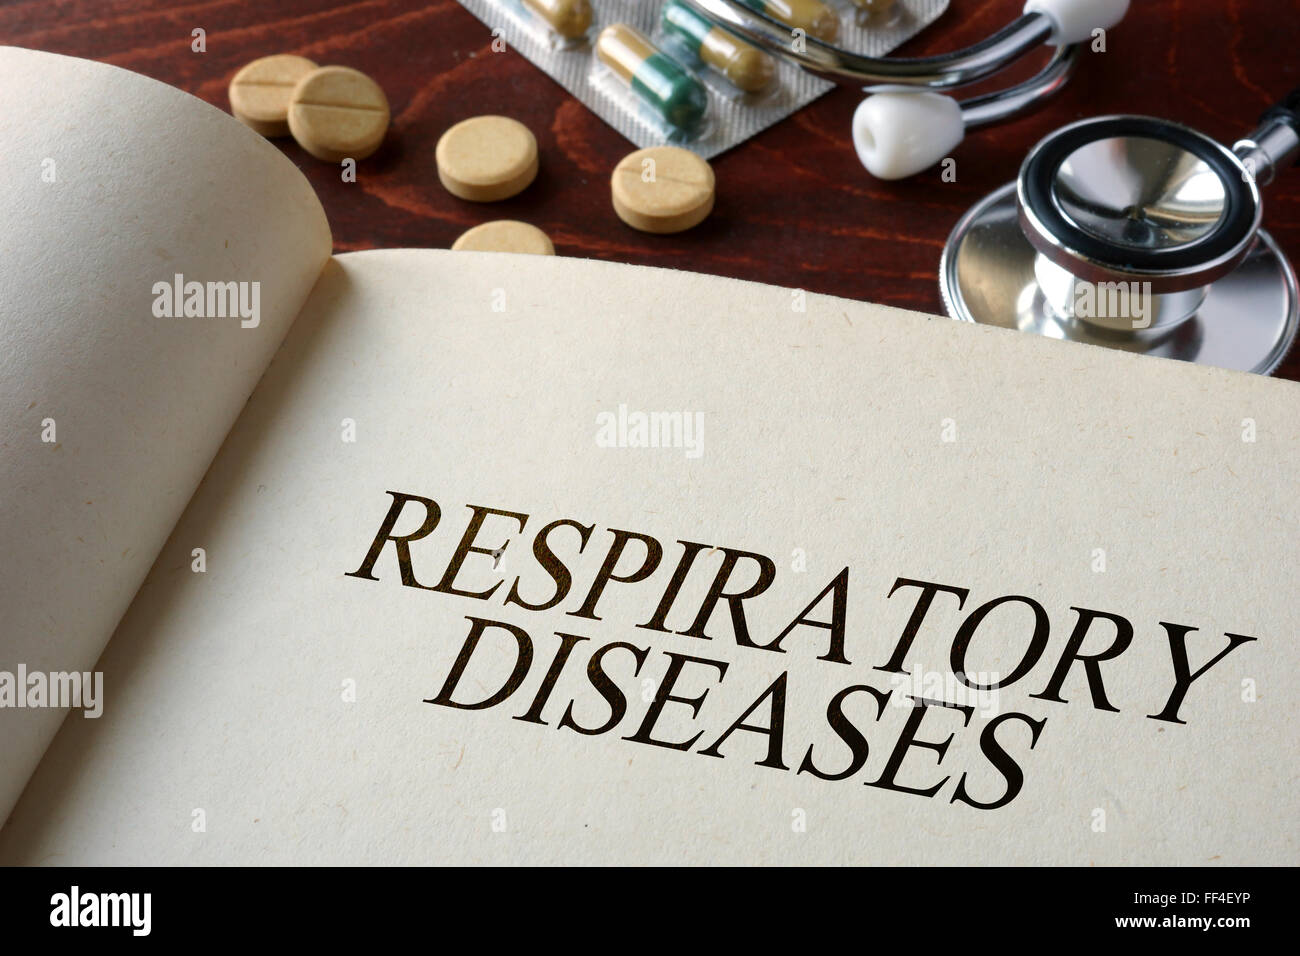 Book with diagnosis respiratory diseases and pills. Medical concept. - Stock Image